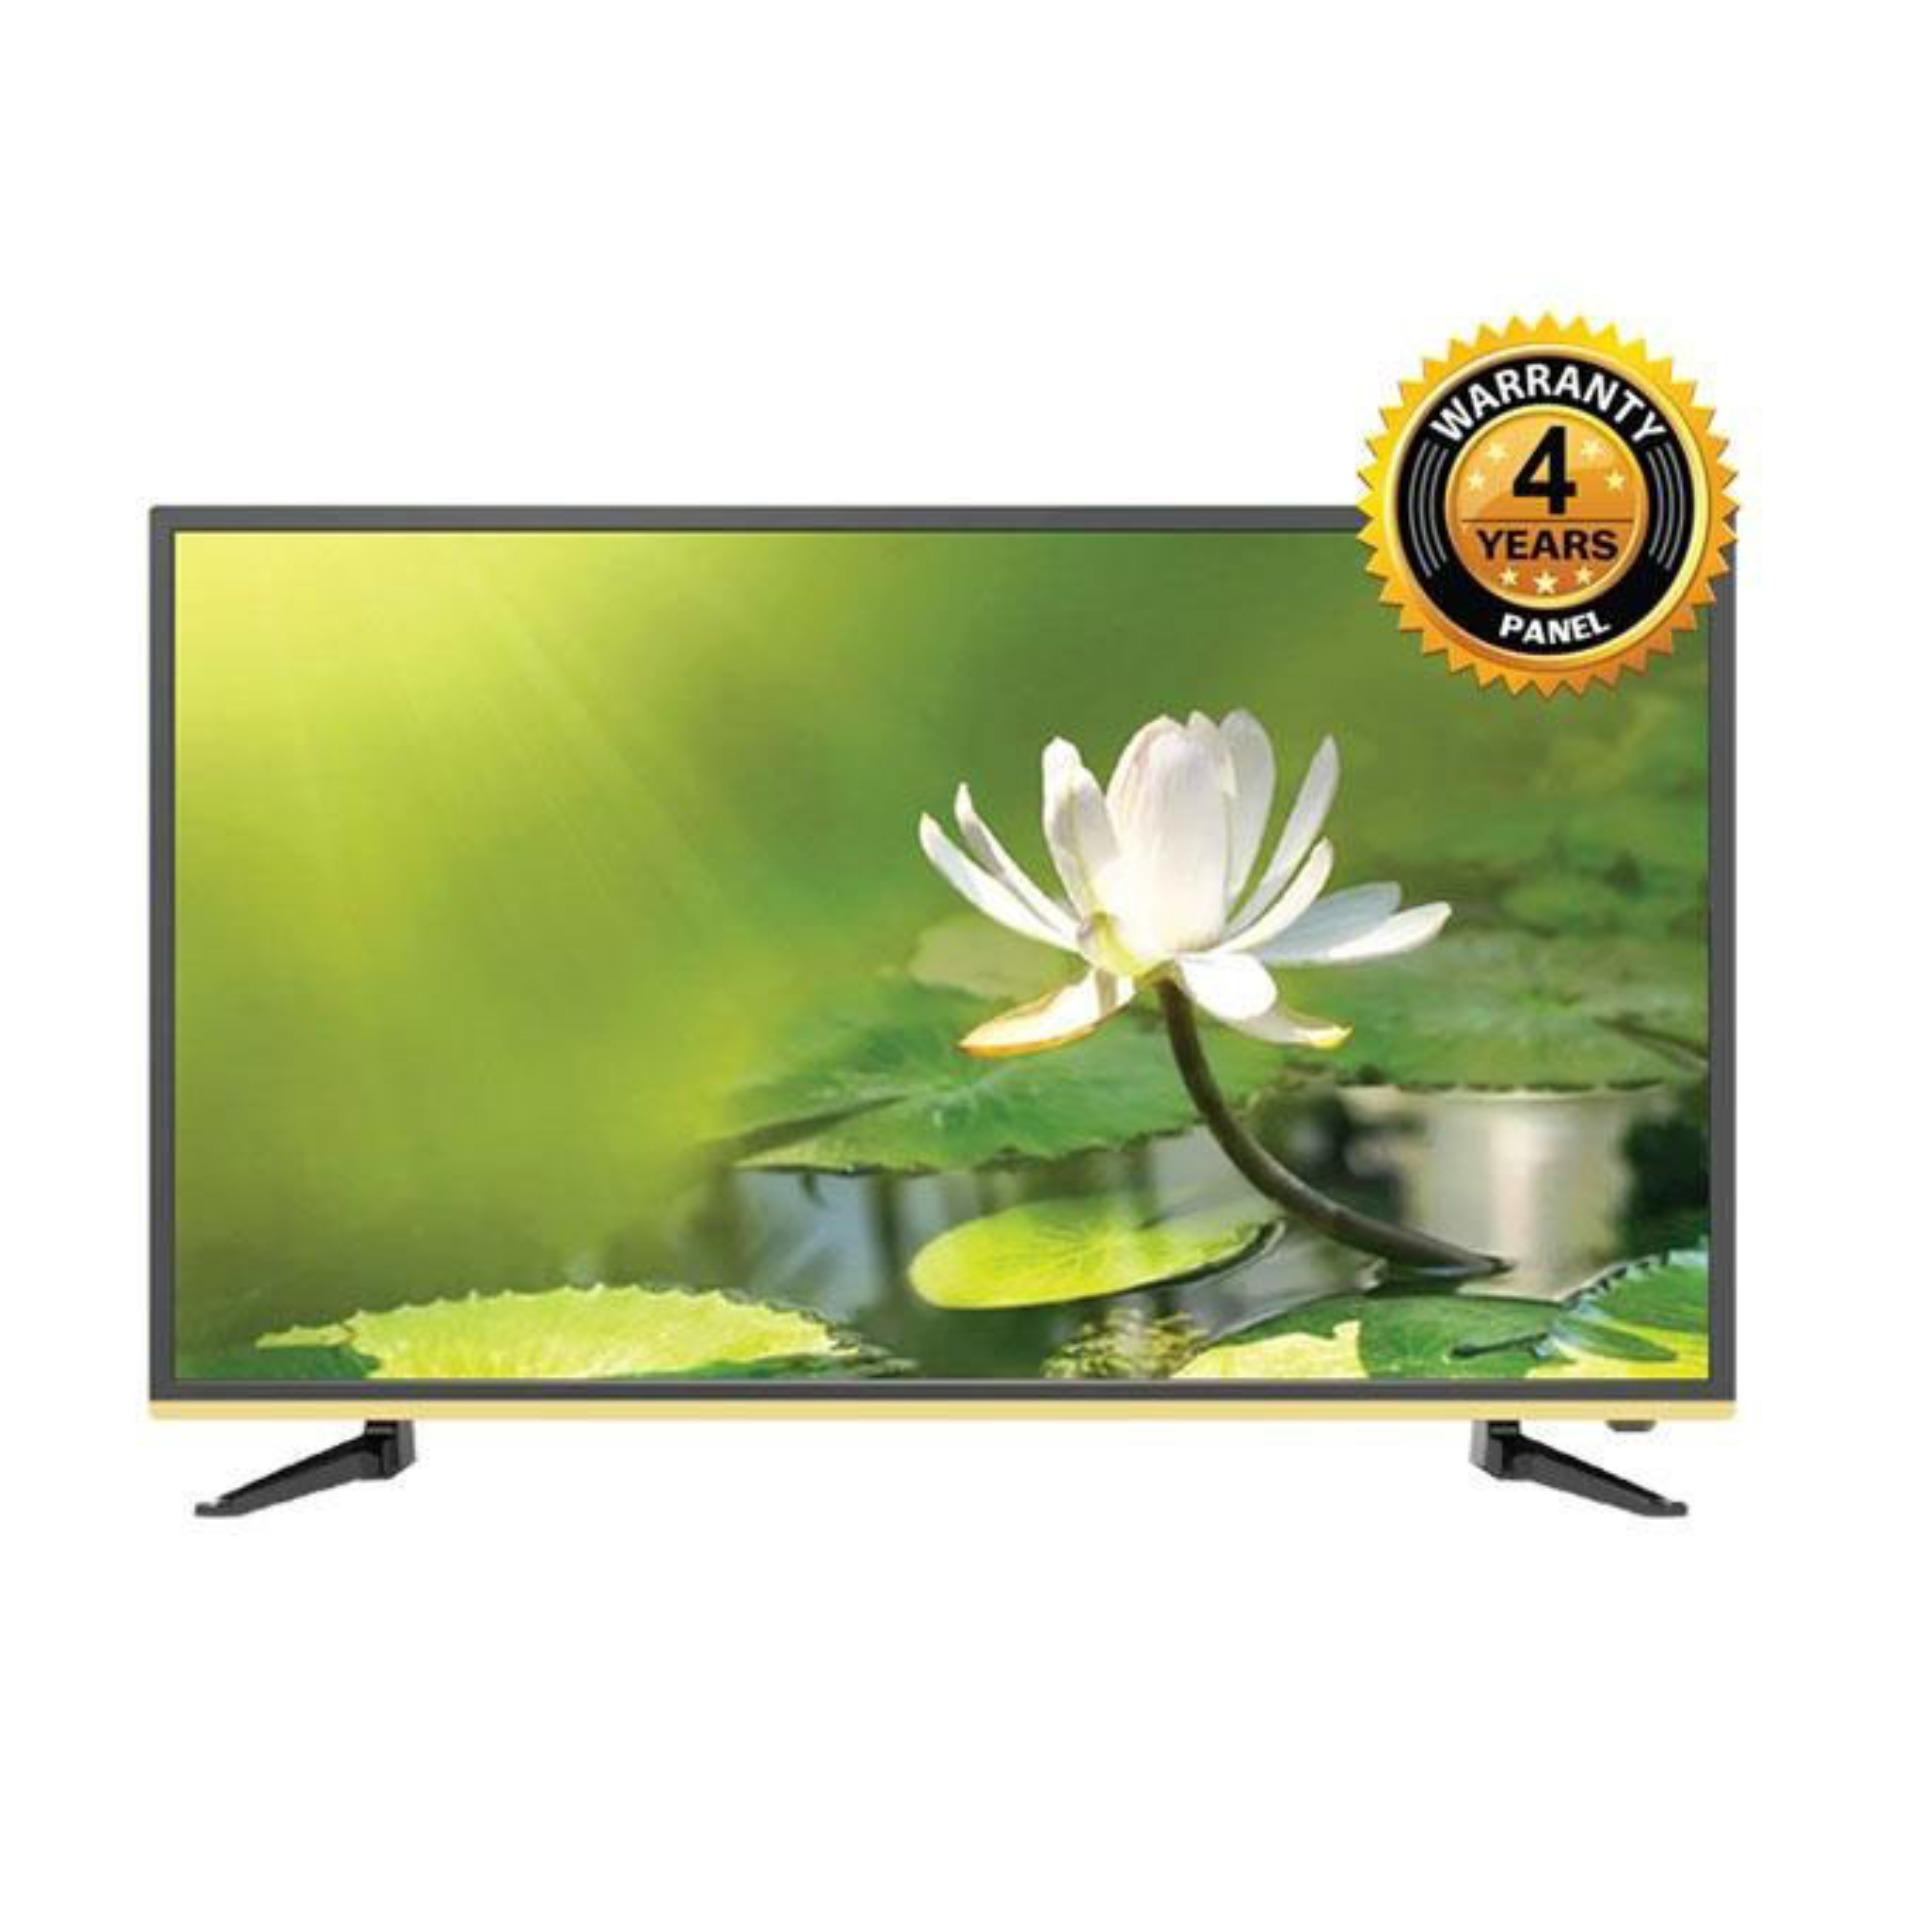 Led Online Shop Kg40mg661 Smart Led Tv 32 Inch Black